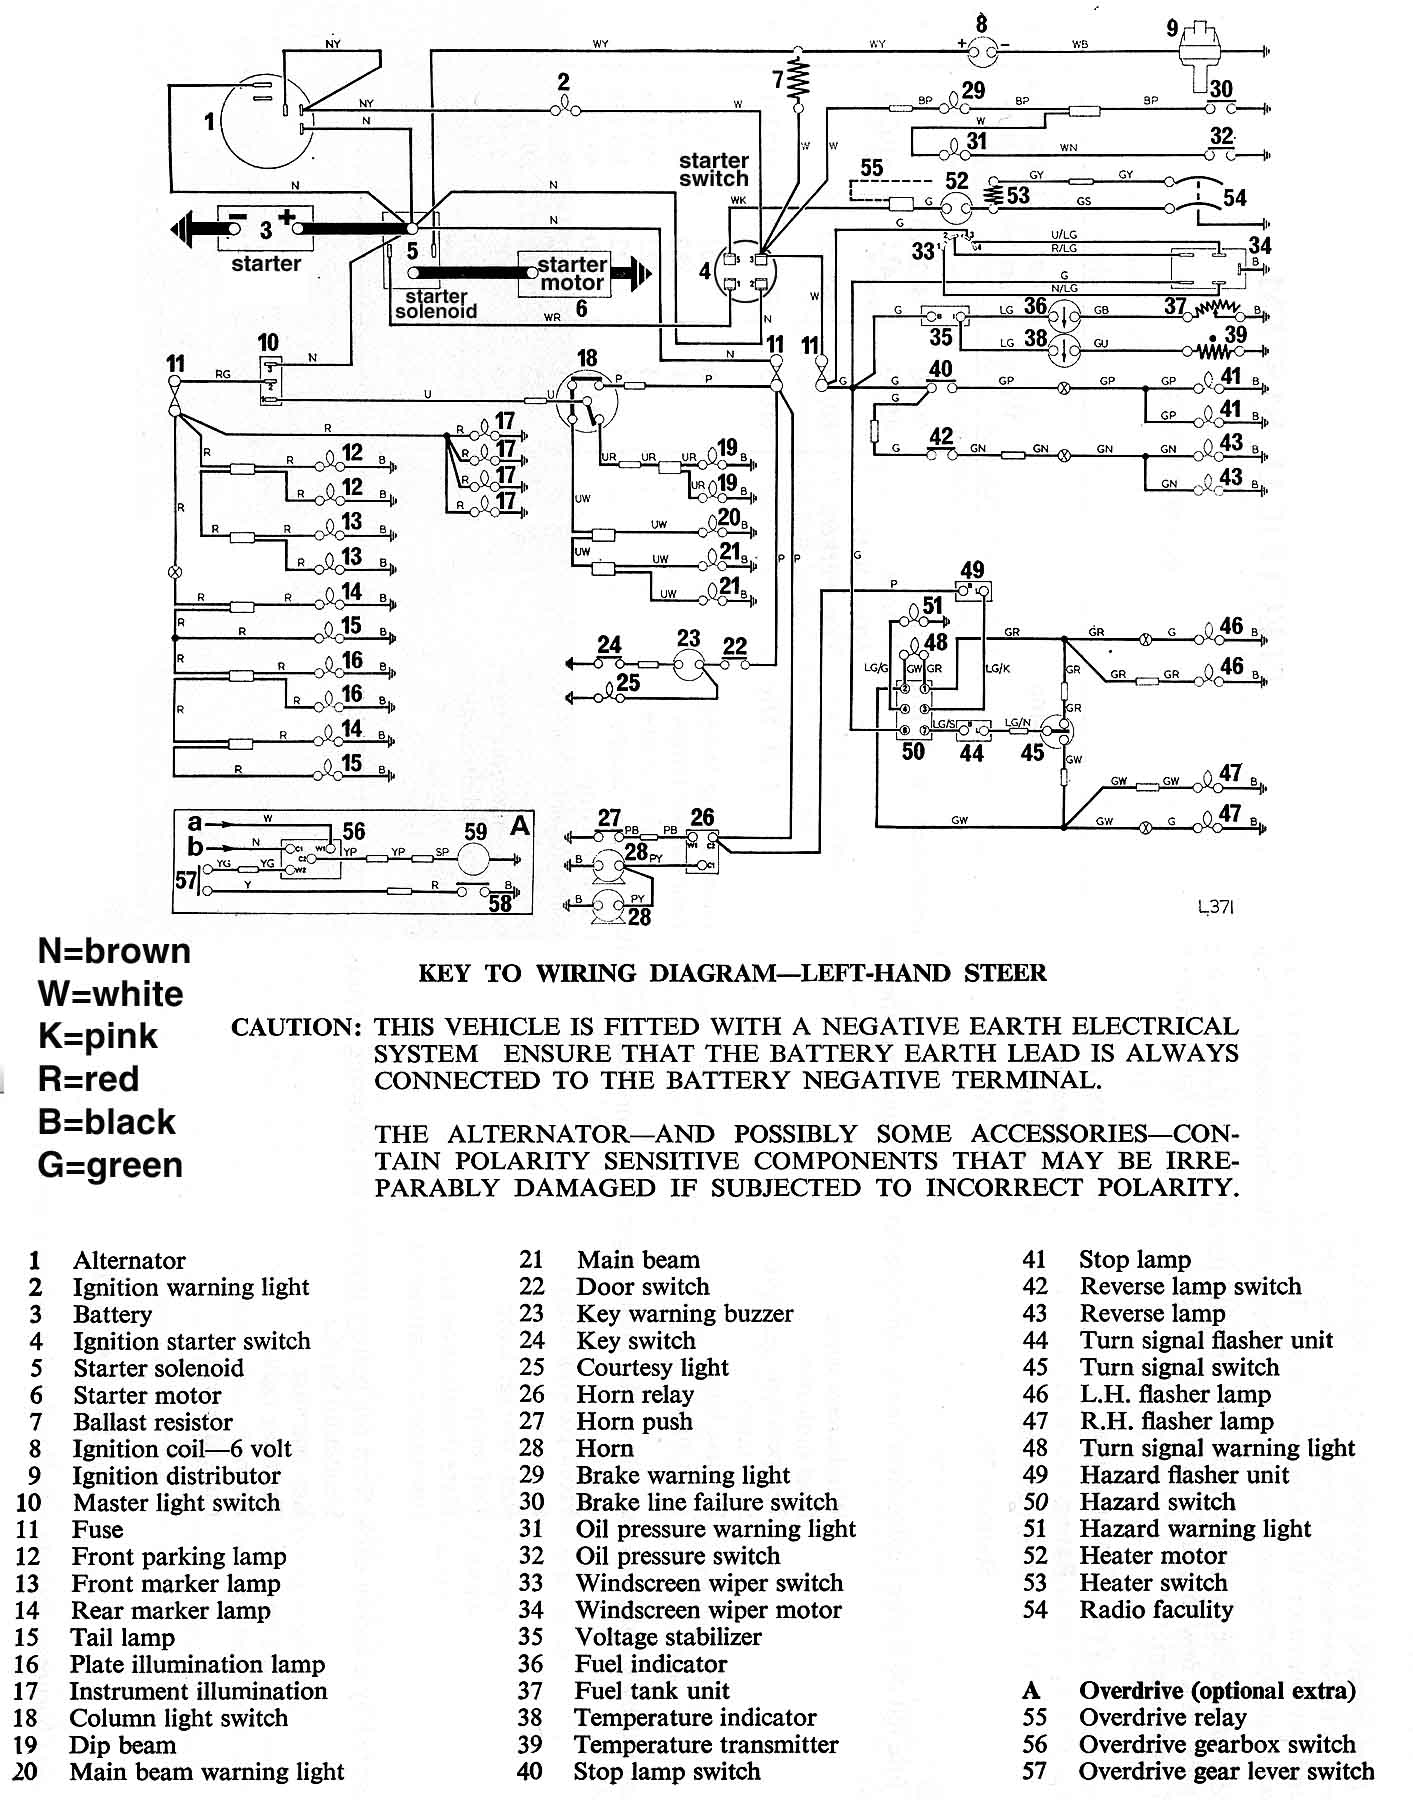 Wiring Schematics and Diagrams - Triumph Spitfire, GT6, HeraldTriumph Spitfire and GT6 Magazine